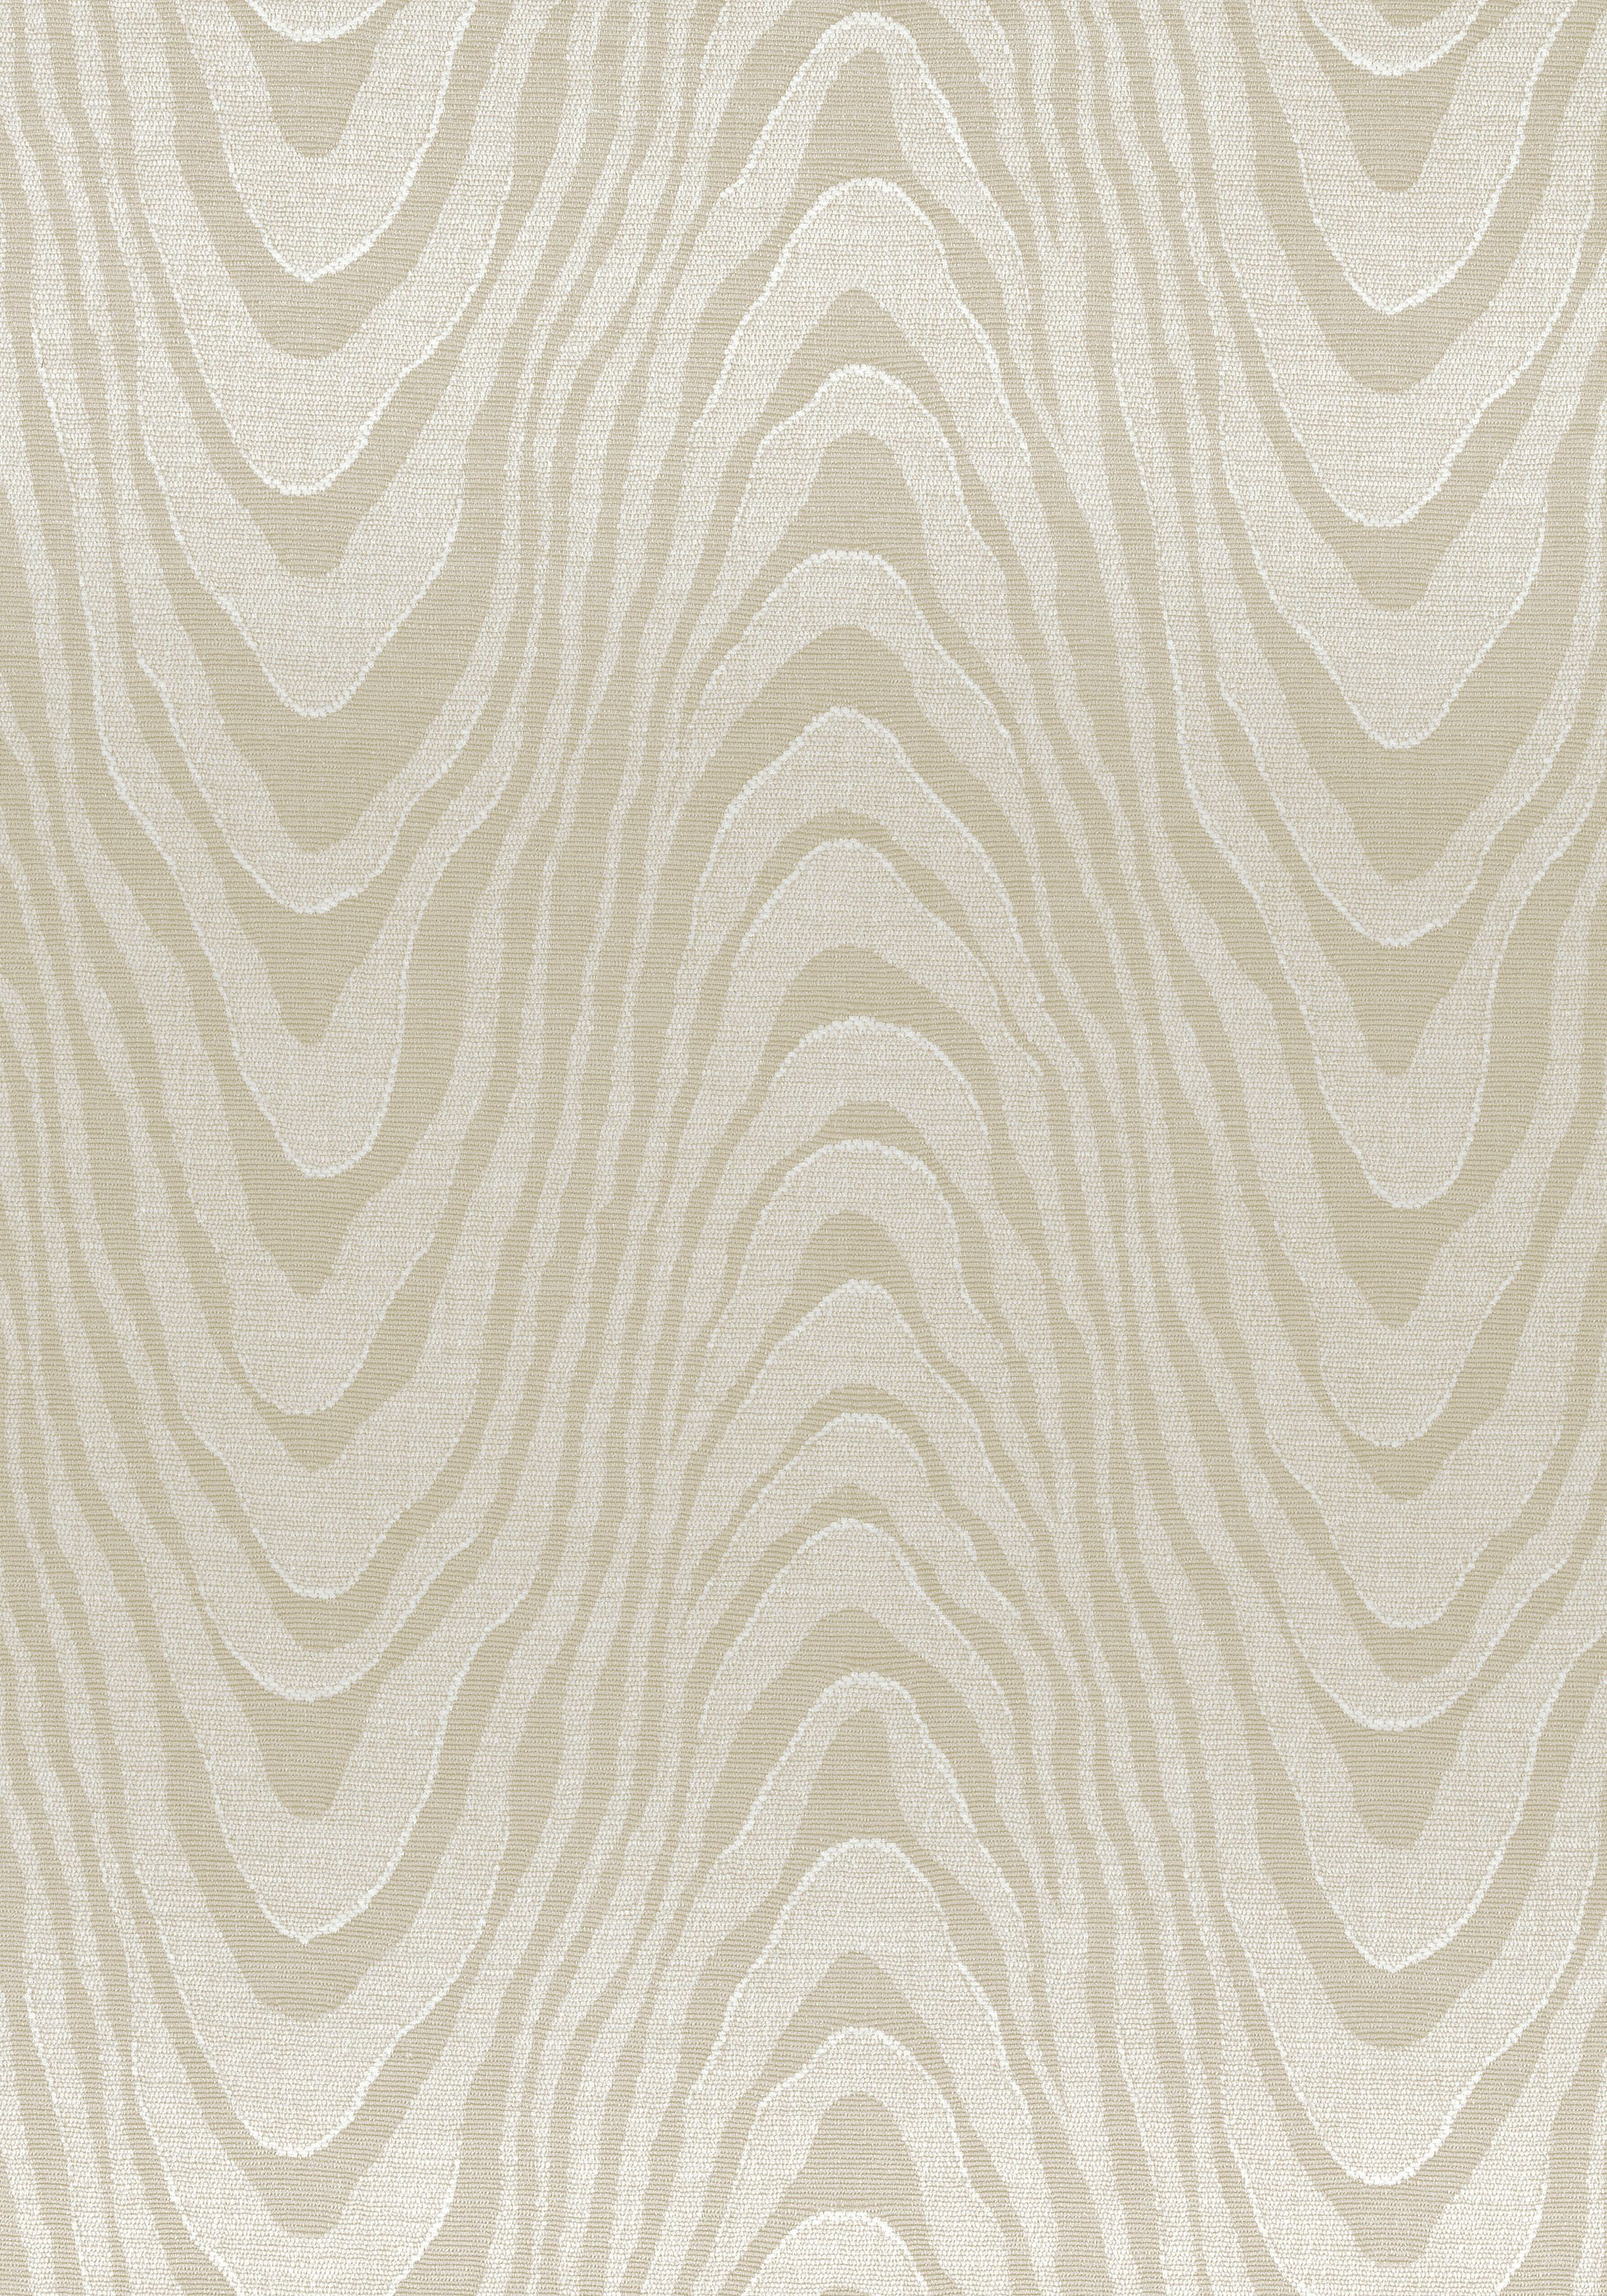 SOUNDWAVE, Flax, W80558, Collection Oasis from Thibaut